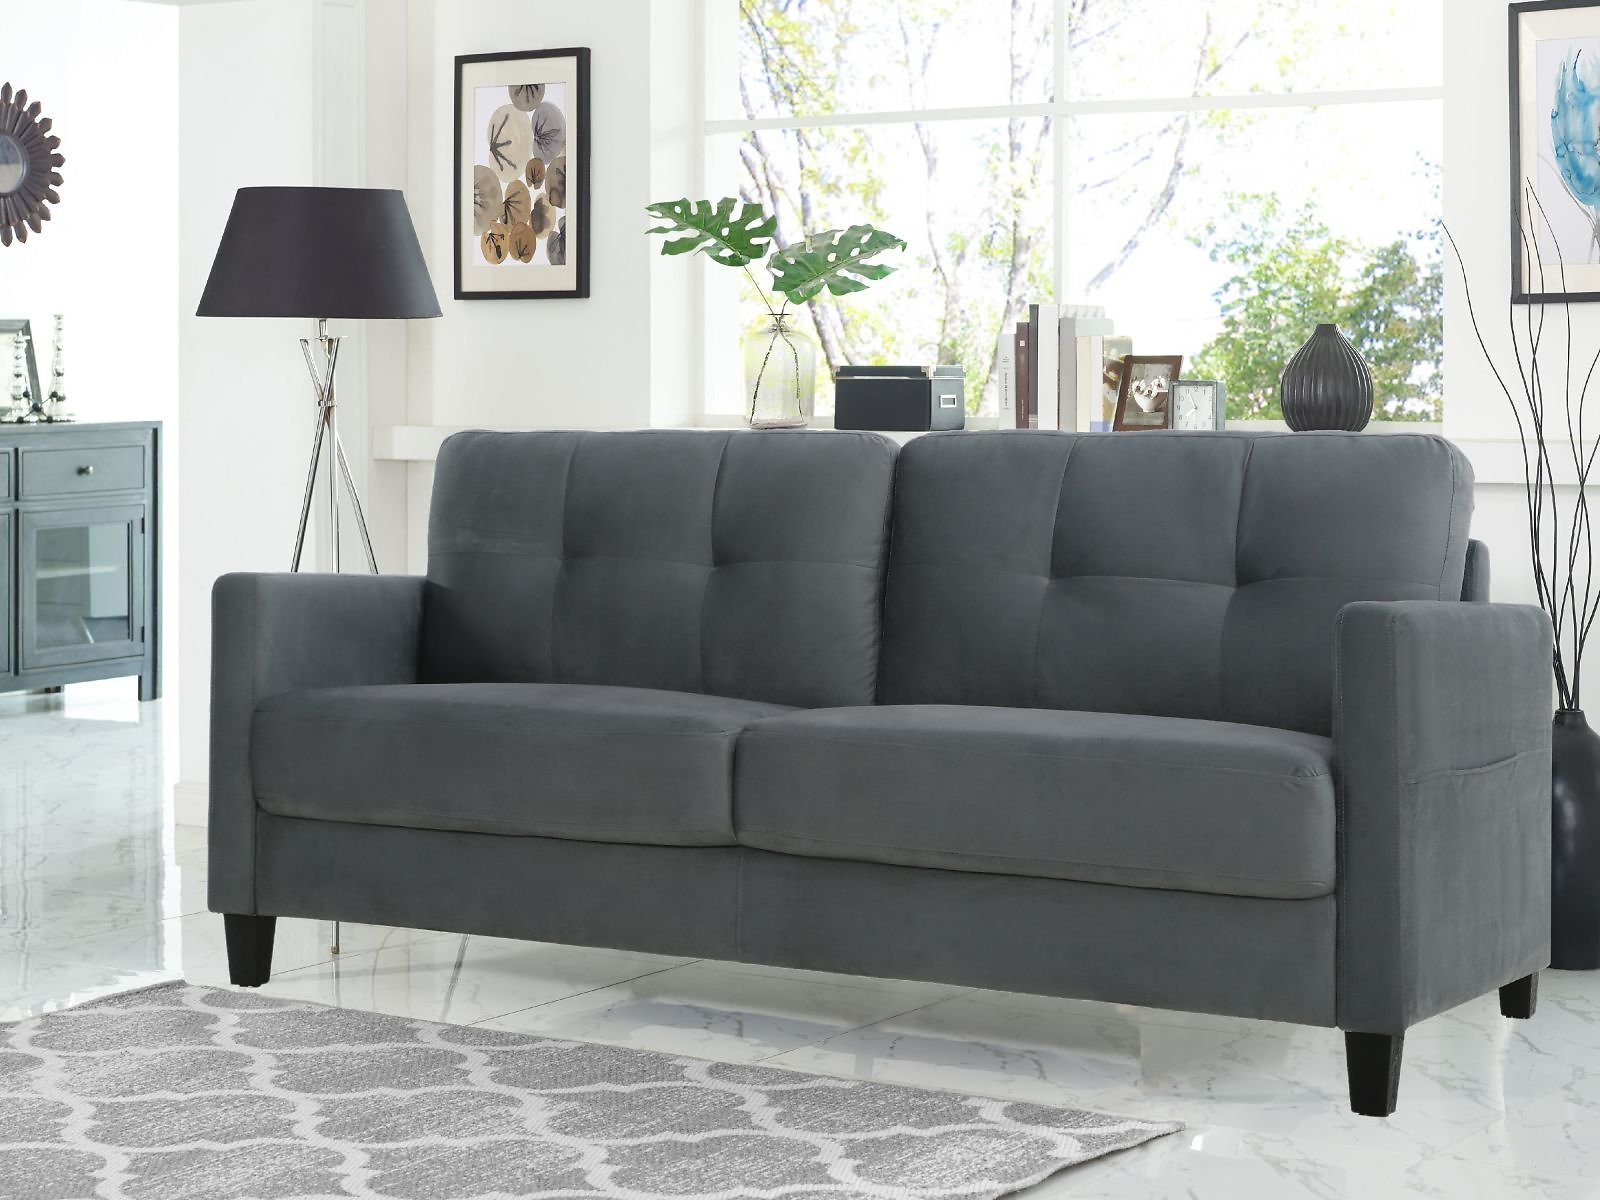 Lifestyle Solutions Tod Sofa with Upholstered Microfiber Fabric and Eucalyptus Wood, Dark Grey